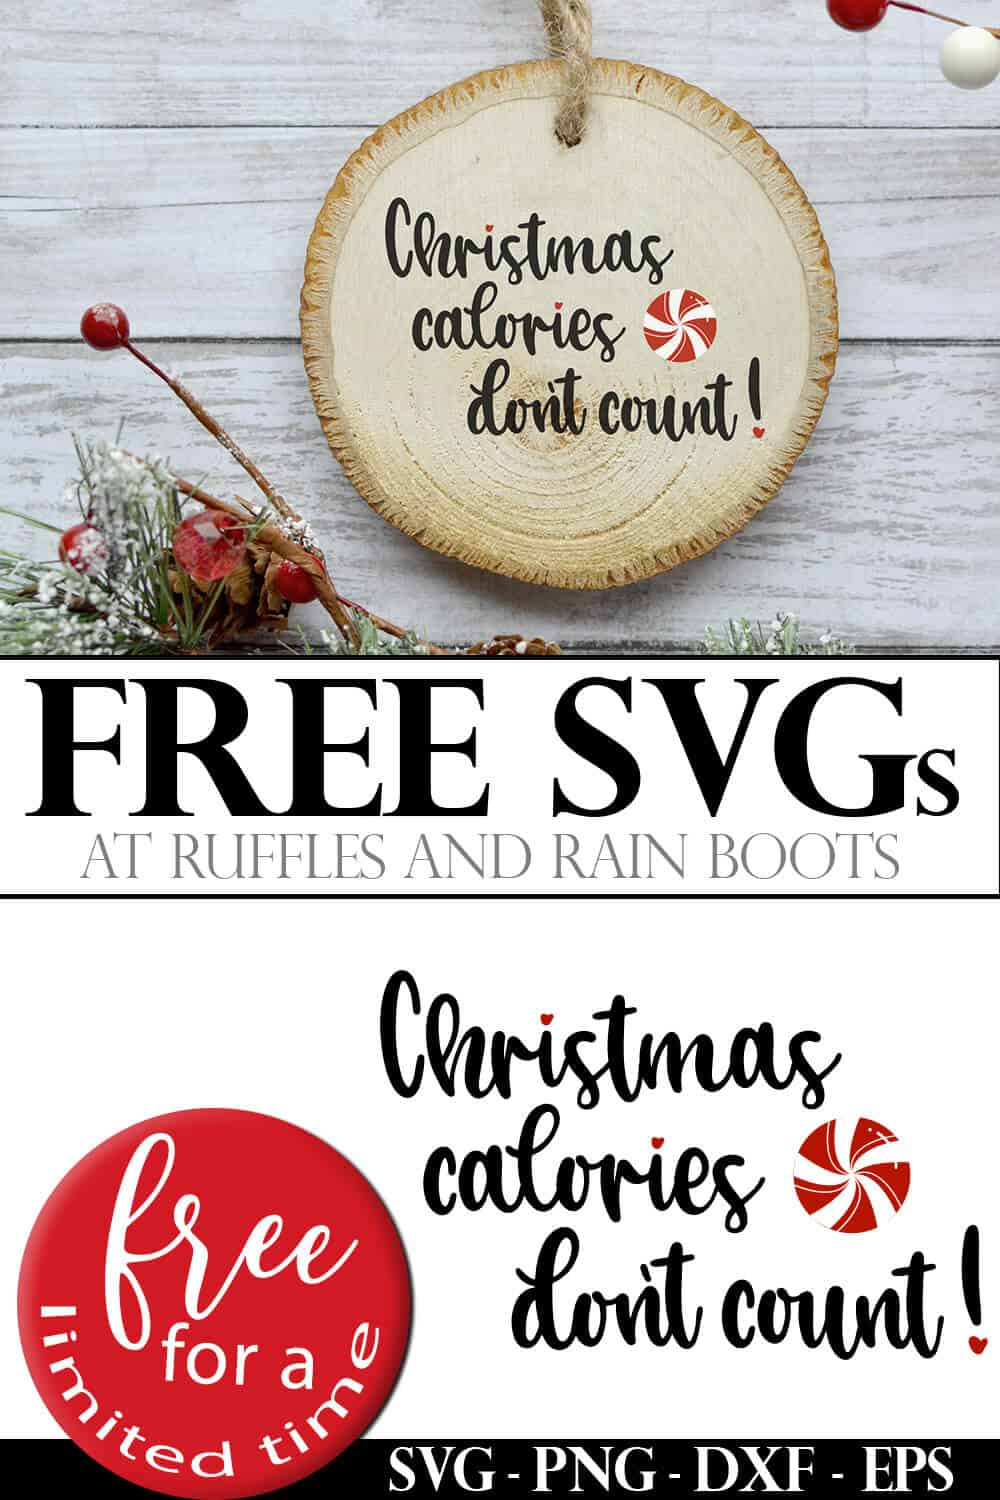 photo collage of funny free Christmas SVG with christmas calories don't count saying with text which reads free svgs free for a limited time